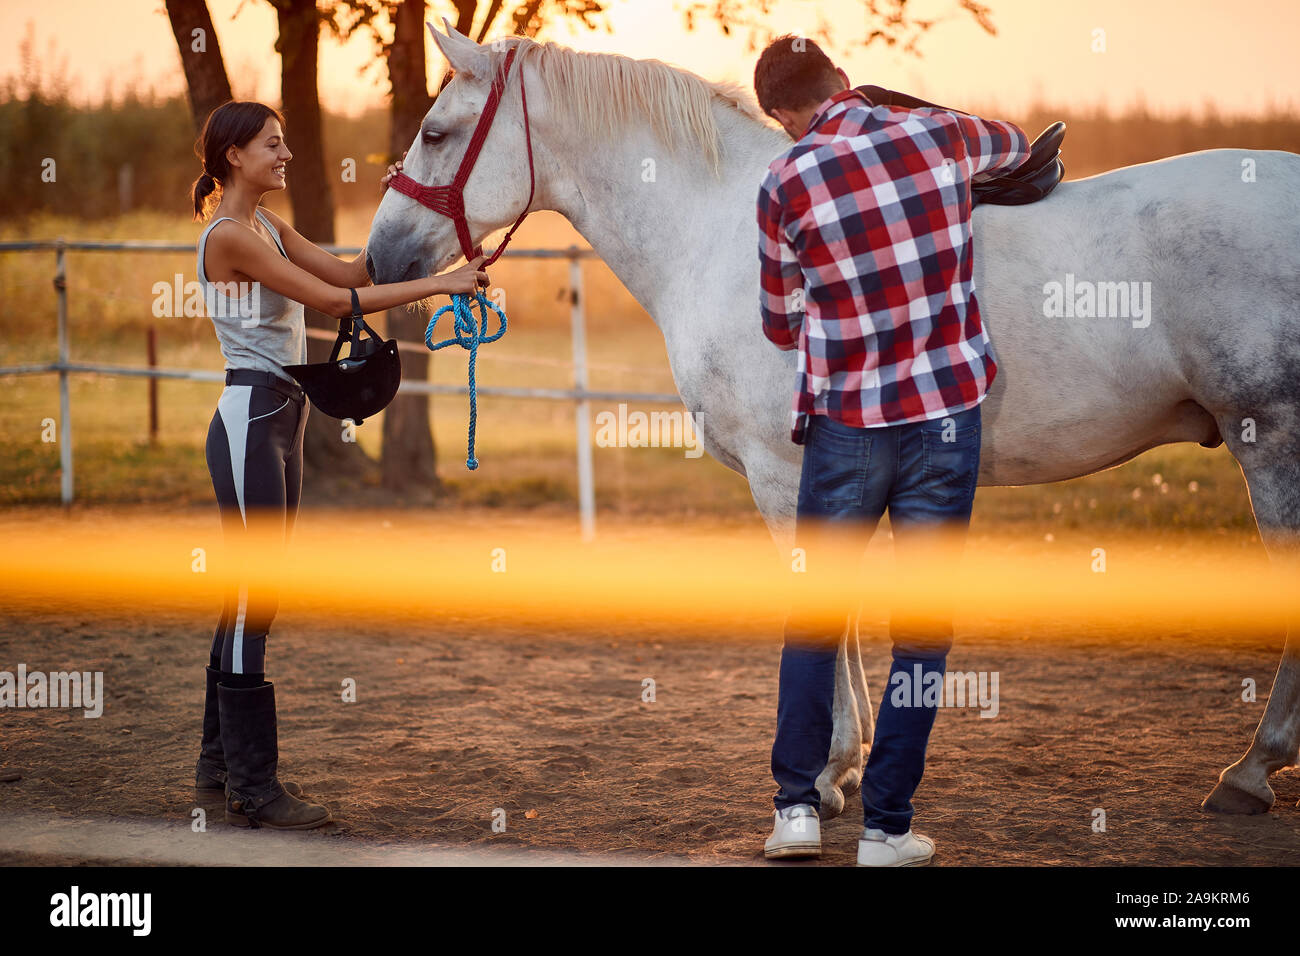 Man And A Woman Tending With Horse Riding Gear Horse Riding Concept Stock Photo Alamy